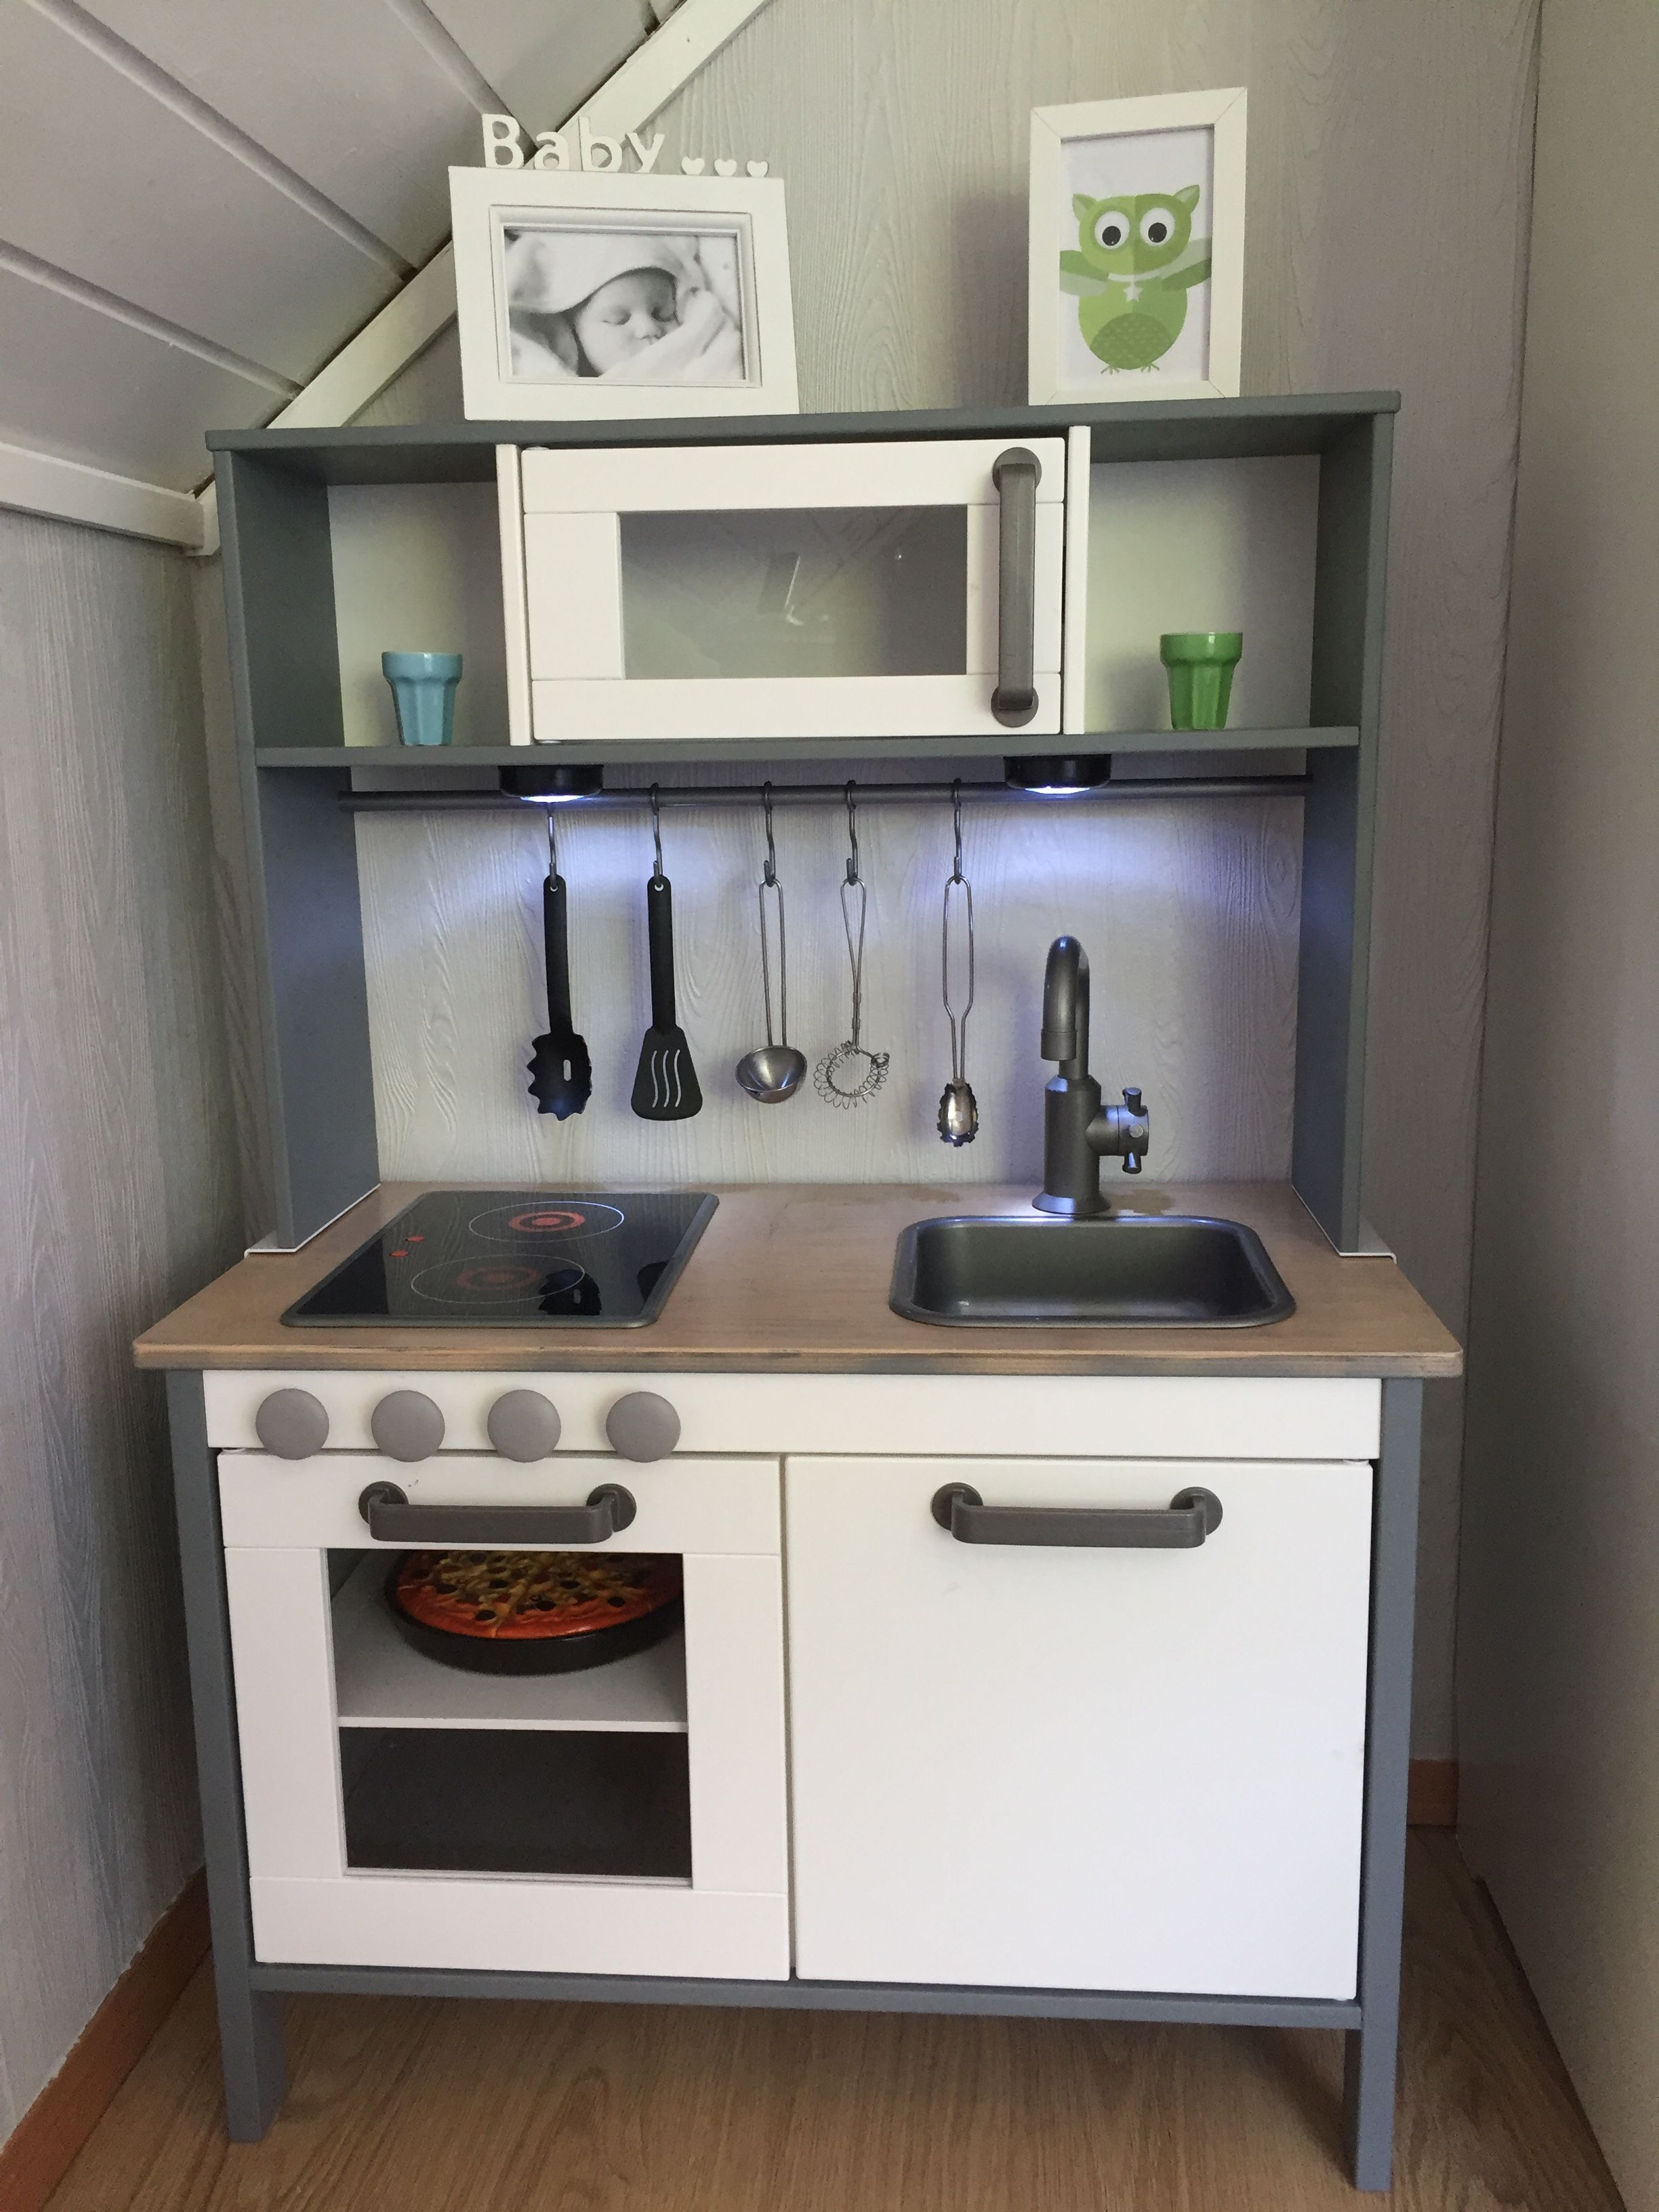 Behr Möbel Ikea Duktig Hack Kids Kitchen Spraypainted Grey | Ikea